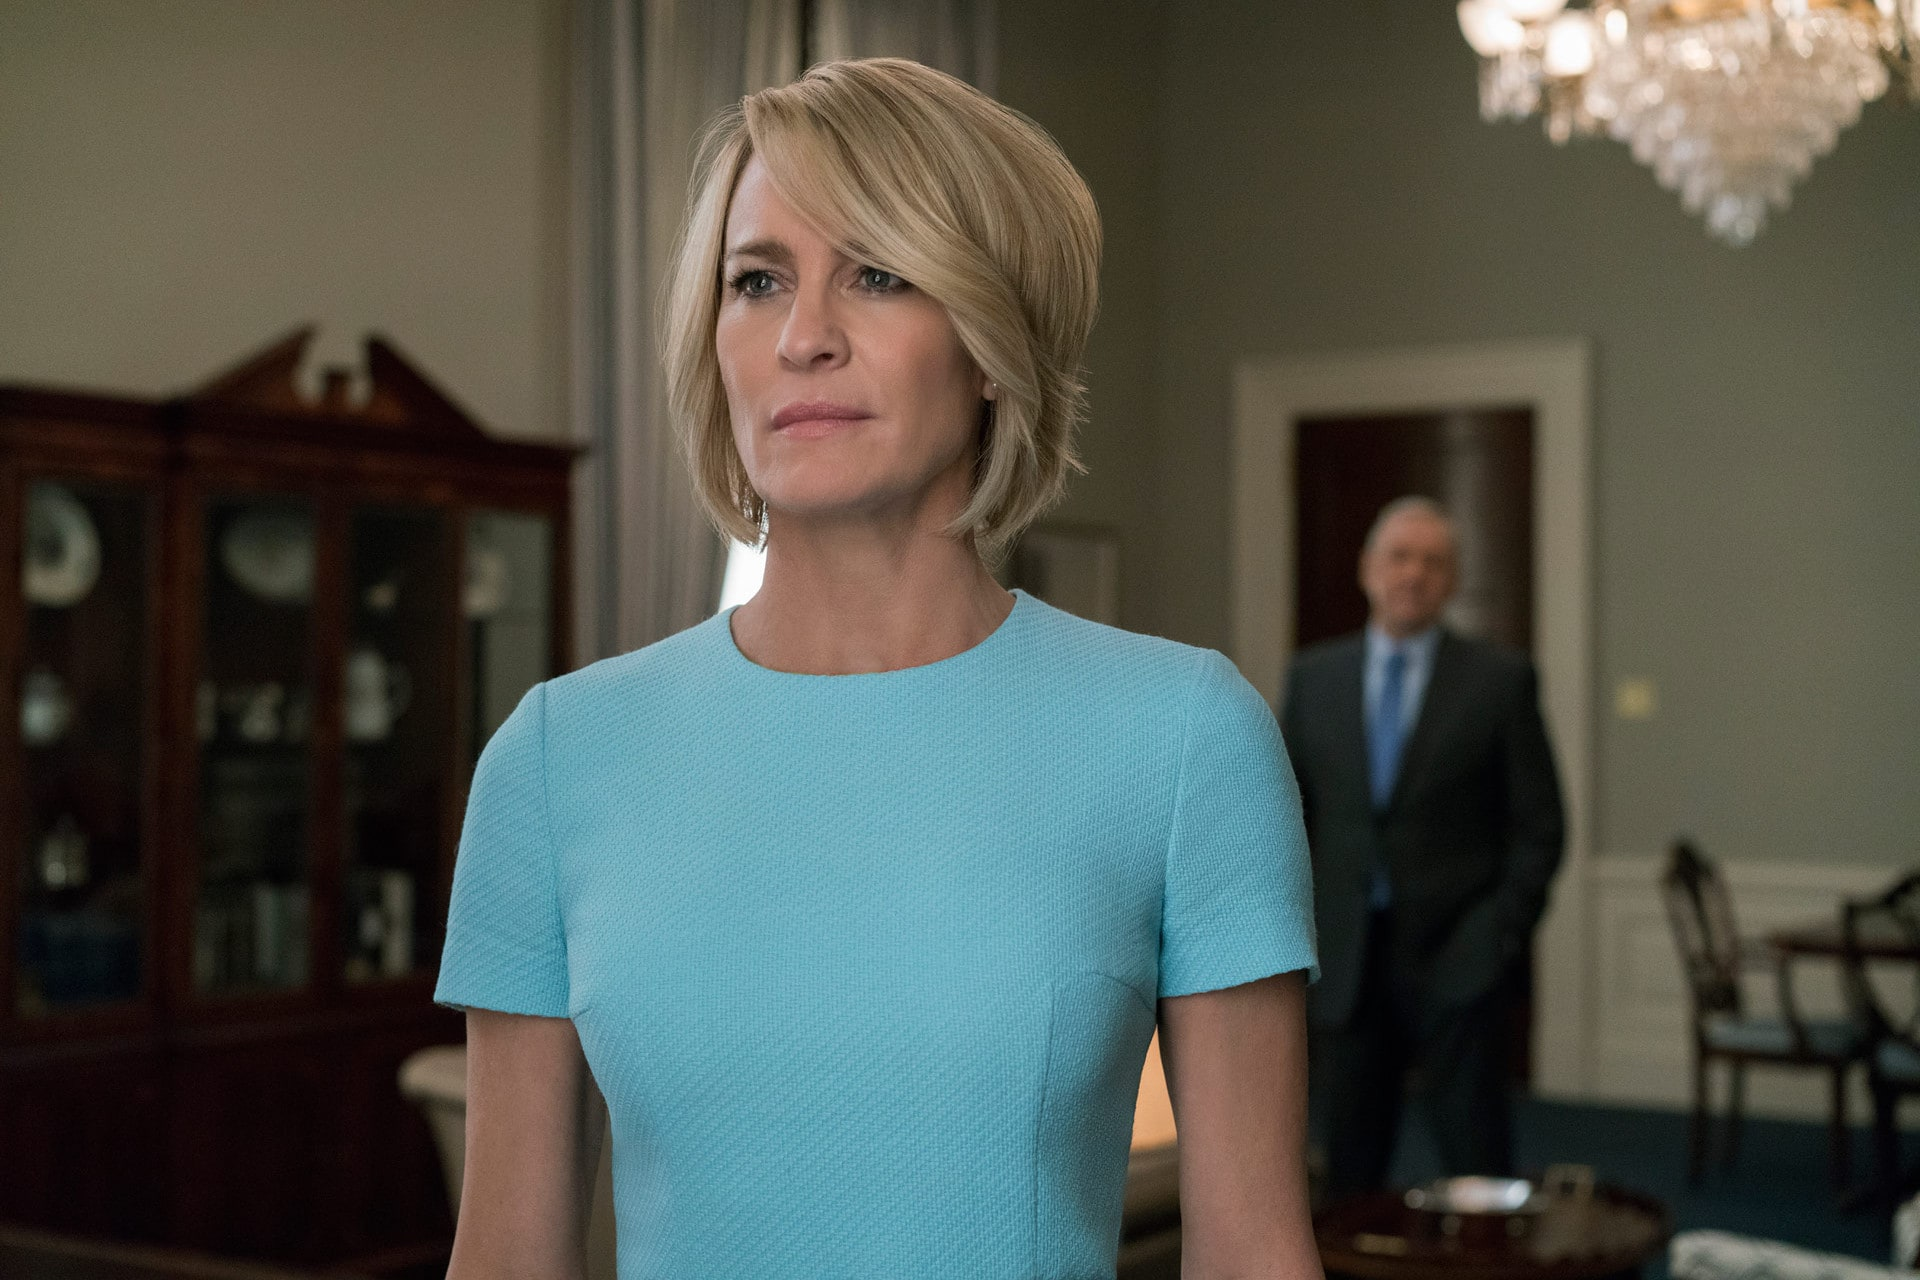 Claire Underwood is taking over the White House in the newest House of Cards teaser